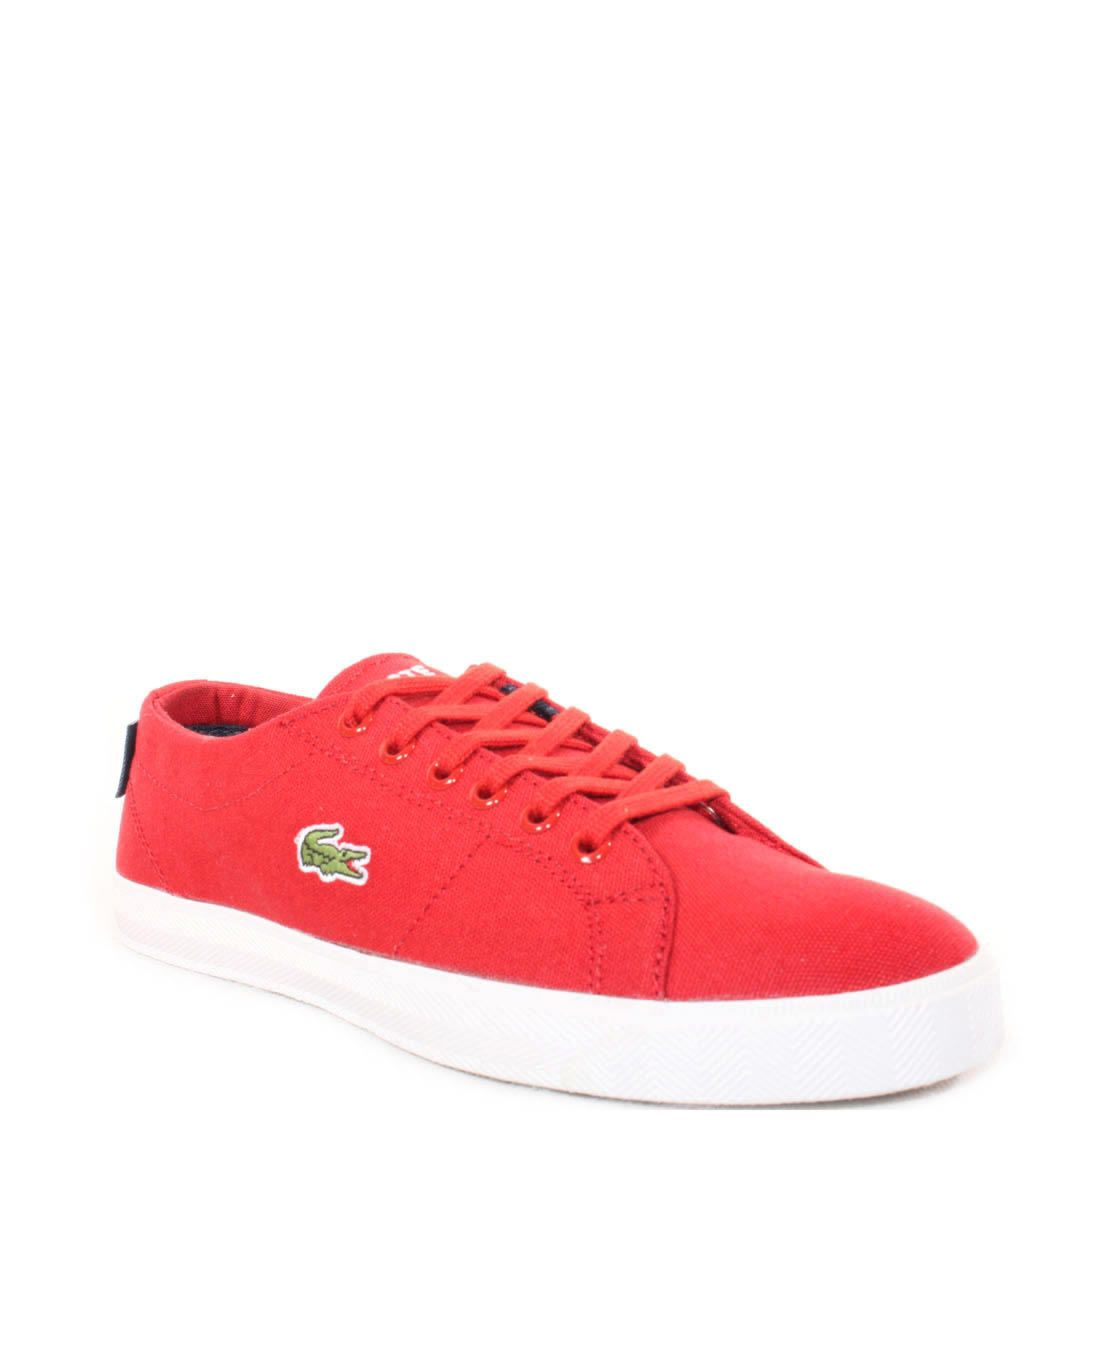 Shoes Zapatillas Rojo Lacoste Shoes Pinterest Marcel Sneakers an800RPqW